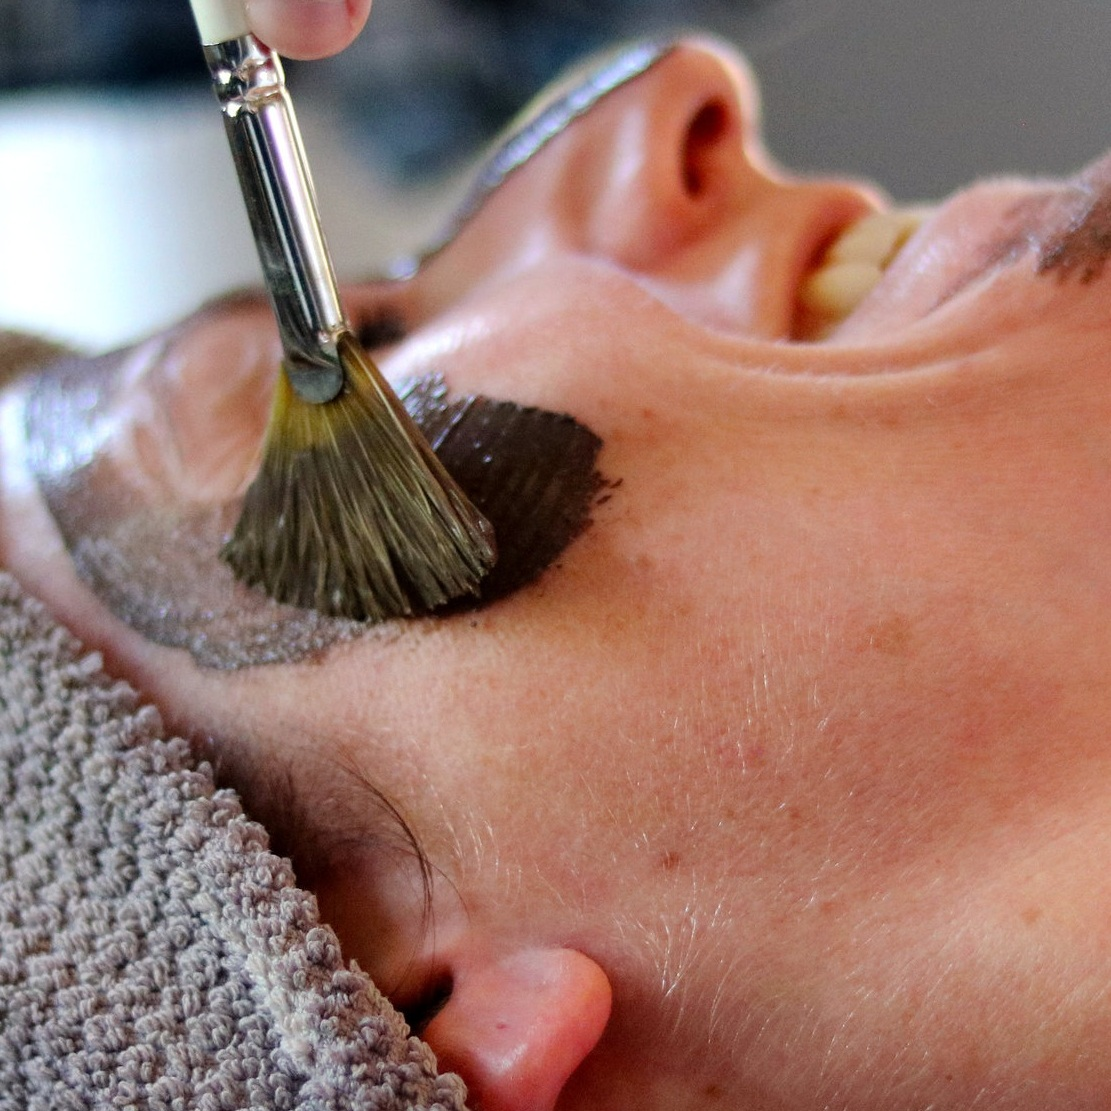 Microdermabrasion - Micro Deluxe Facial 60min $160Serum Infused Dermabrasion 30min $125Diamond Tip Microdermabrasion 30min $105Combine dermabrasion with a full facial, or choose a session that is just focused on dermabrasion. We offer both traditional diamond tip and serum infused wet dermabrasion.